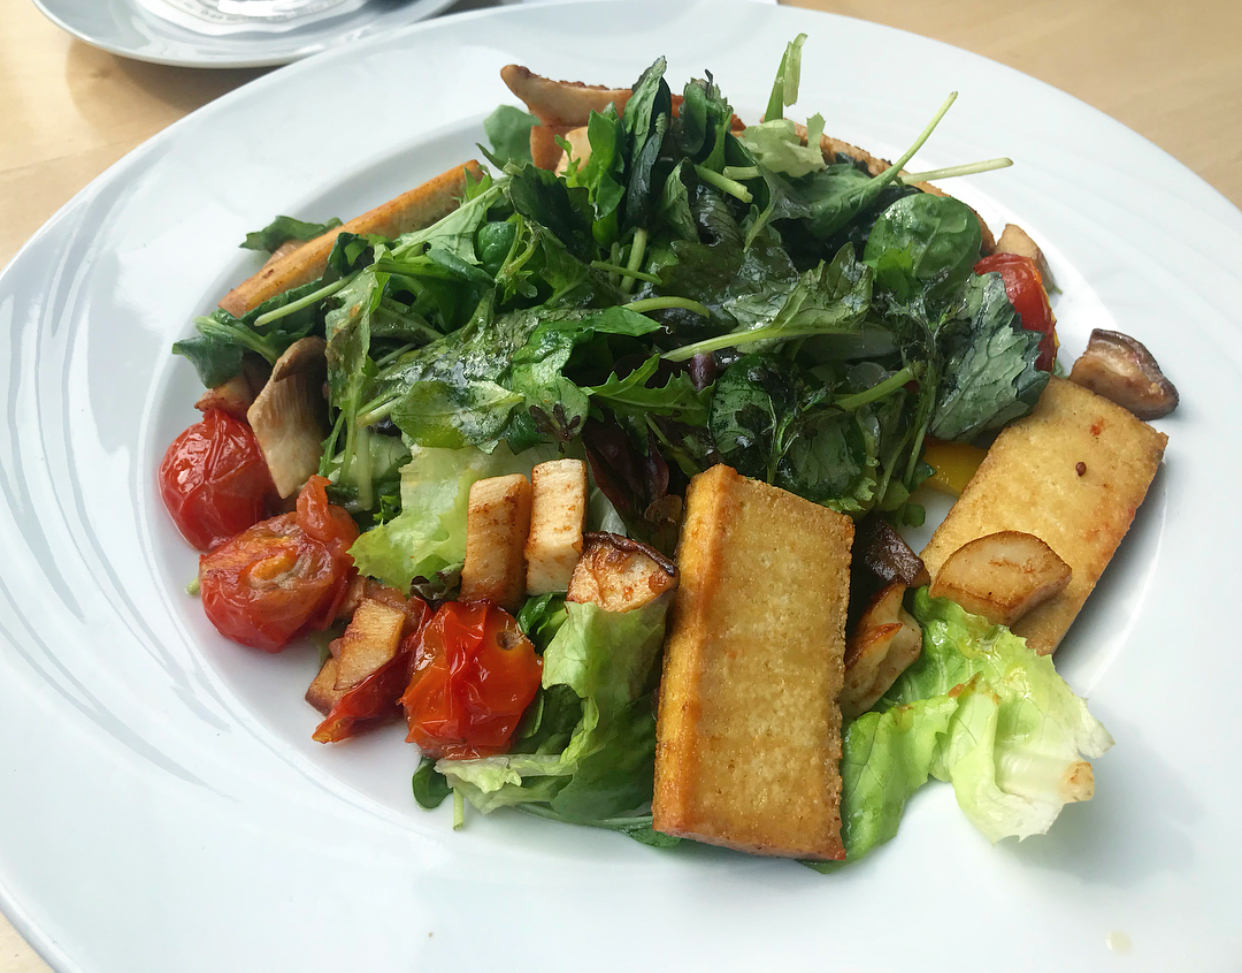 The tofu salad that became my lunch 3 days in a row haha.